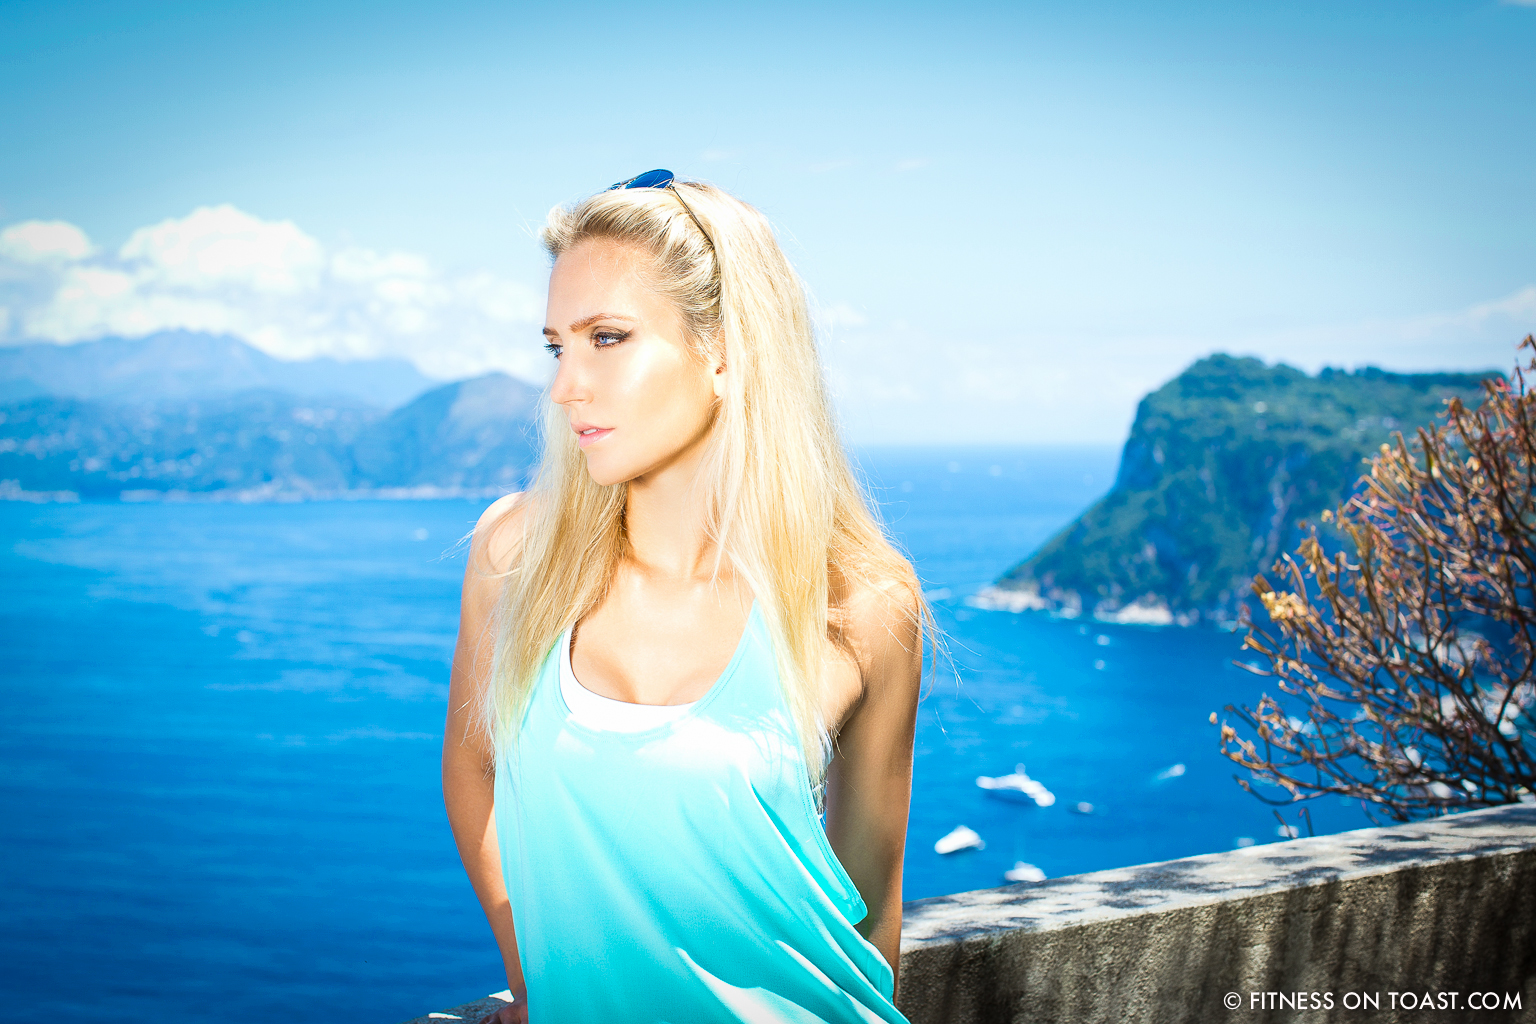 Fitness On Toast Faya Blog Girl Training Outfit Fashion Fit Workout Meditation ActiveInStyle Lorna Jane Capri Caesar Augustus Hotel Travel Balcony Beautiful View-3